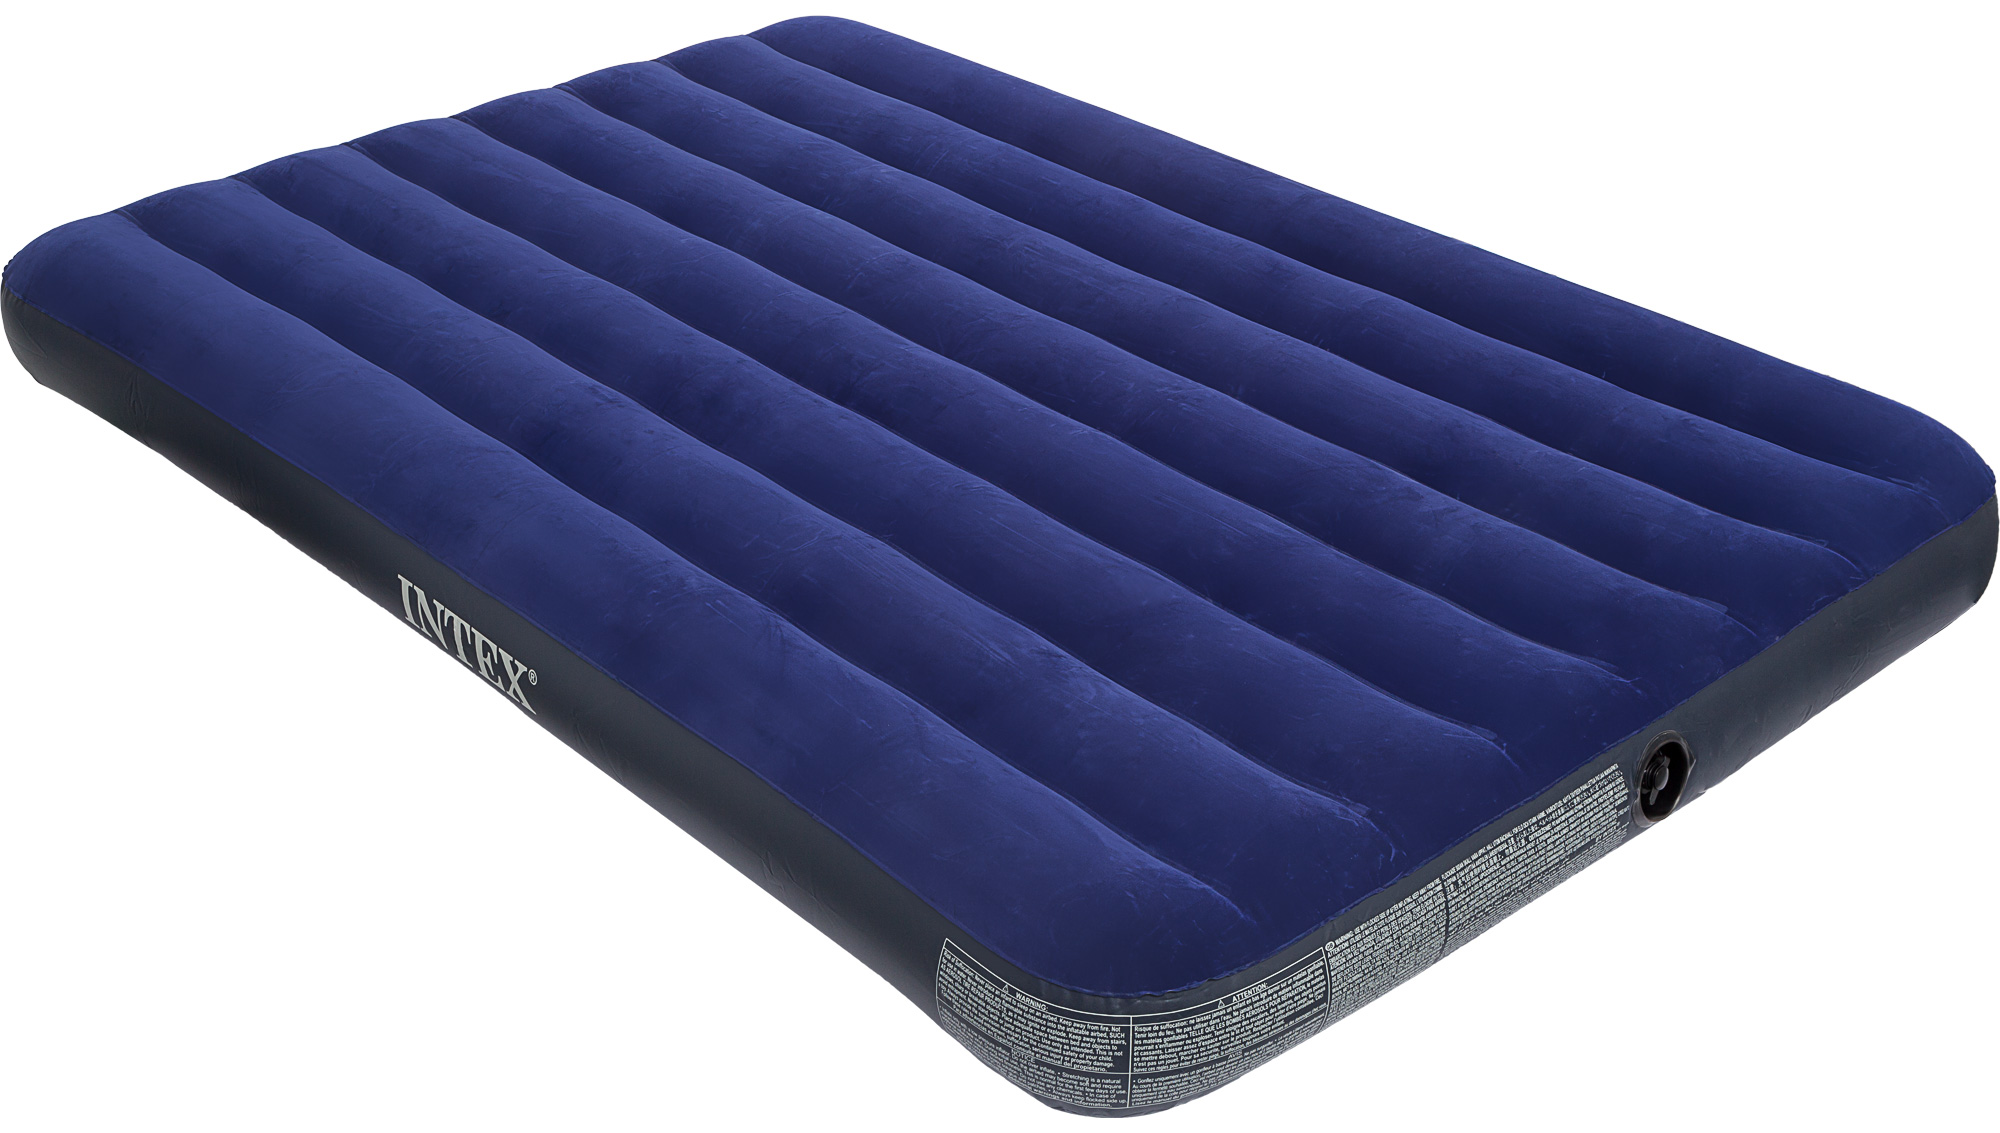 Intex Матрас надувной Intex Classic Downy Bed Full цена